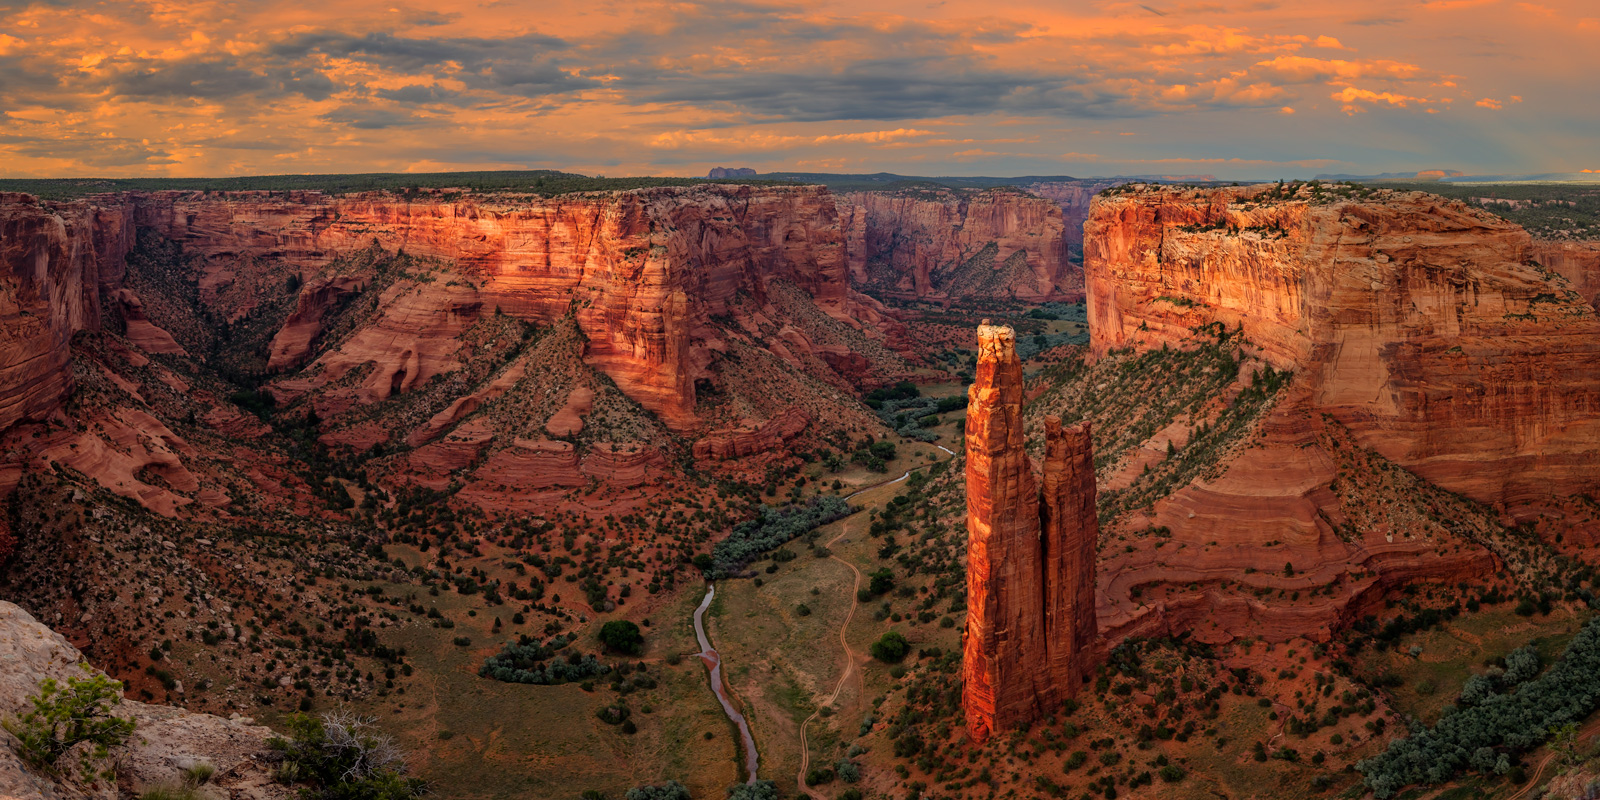 Arizona, Spider Rock, Canyon, Canyon de Chelly, Sunset, limited edition, photograph, fine art, landscape, red rock, photo